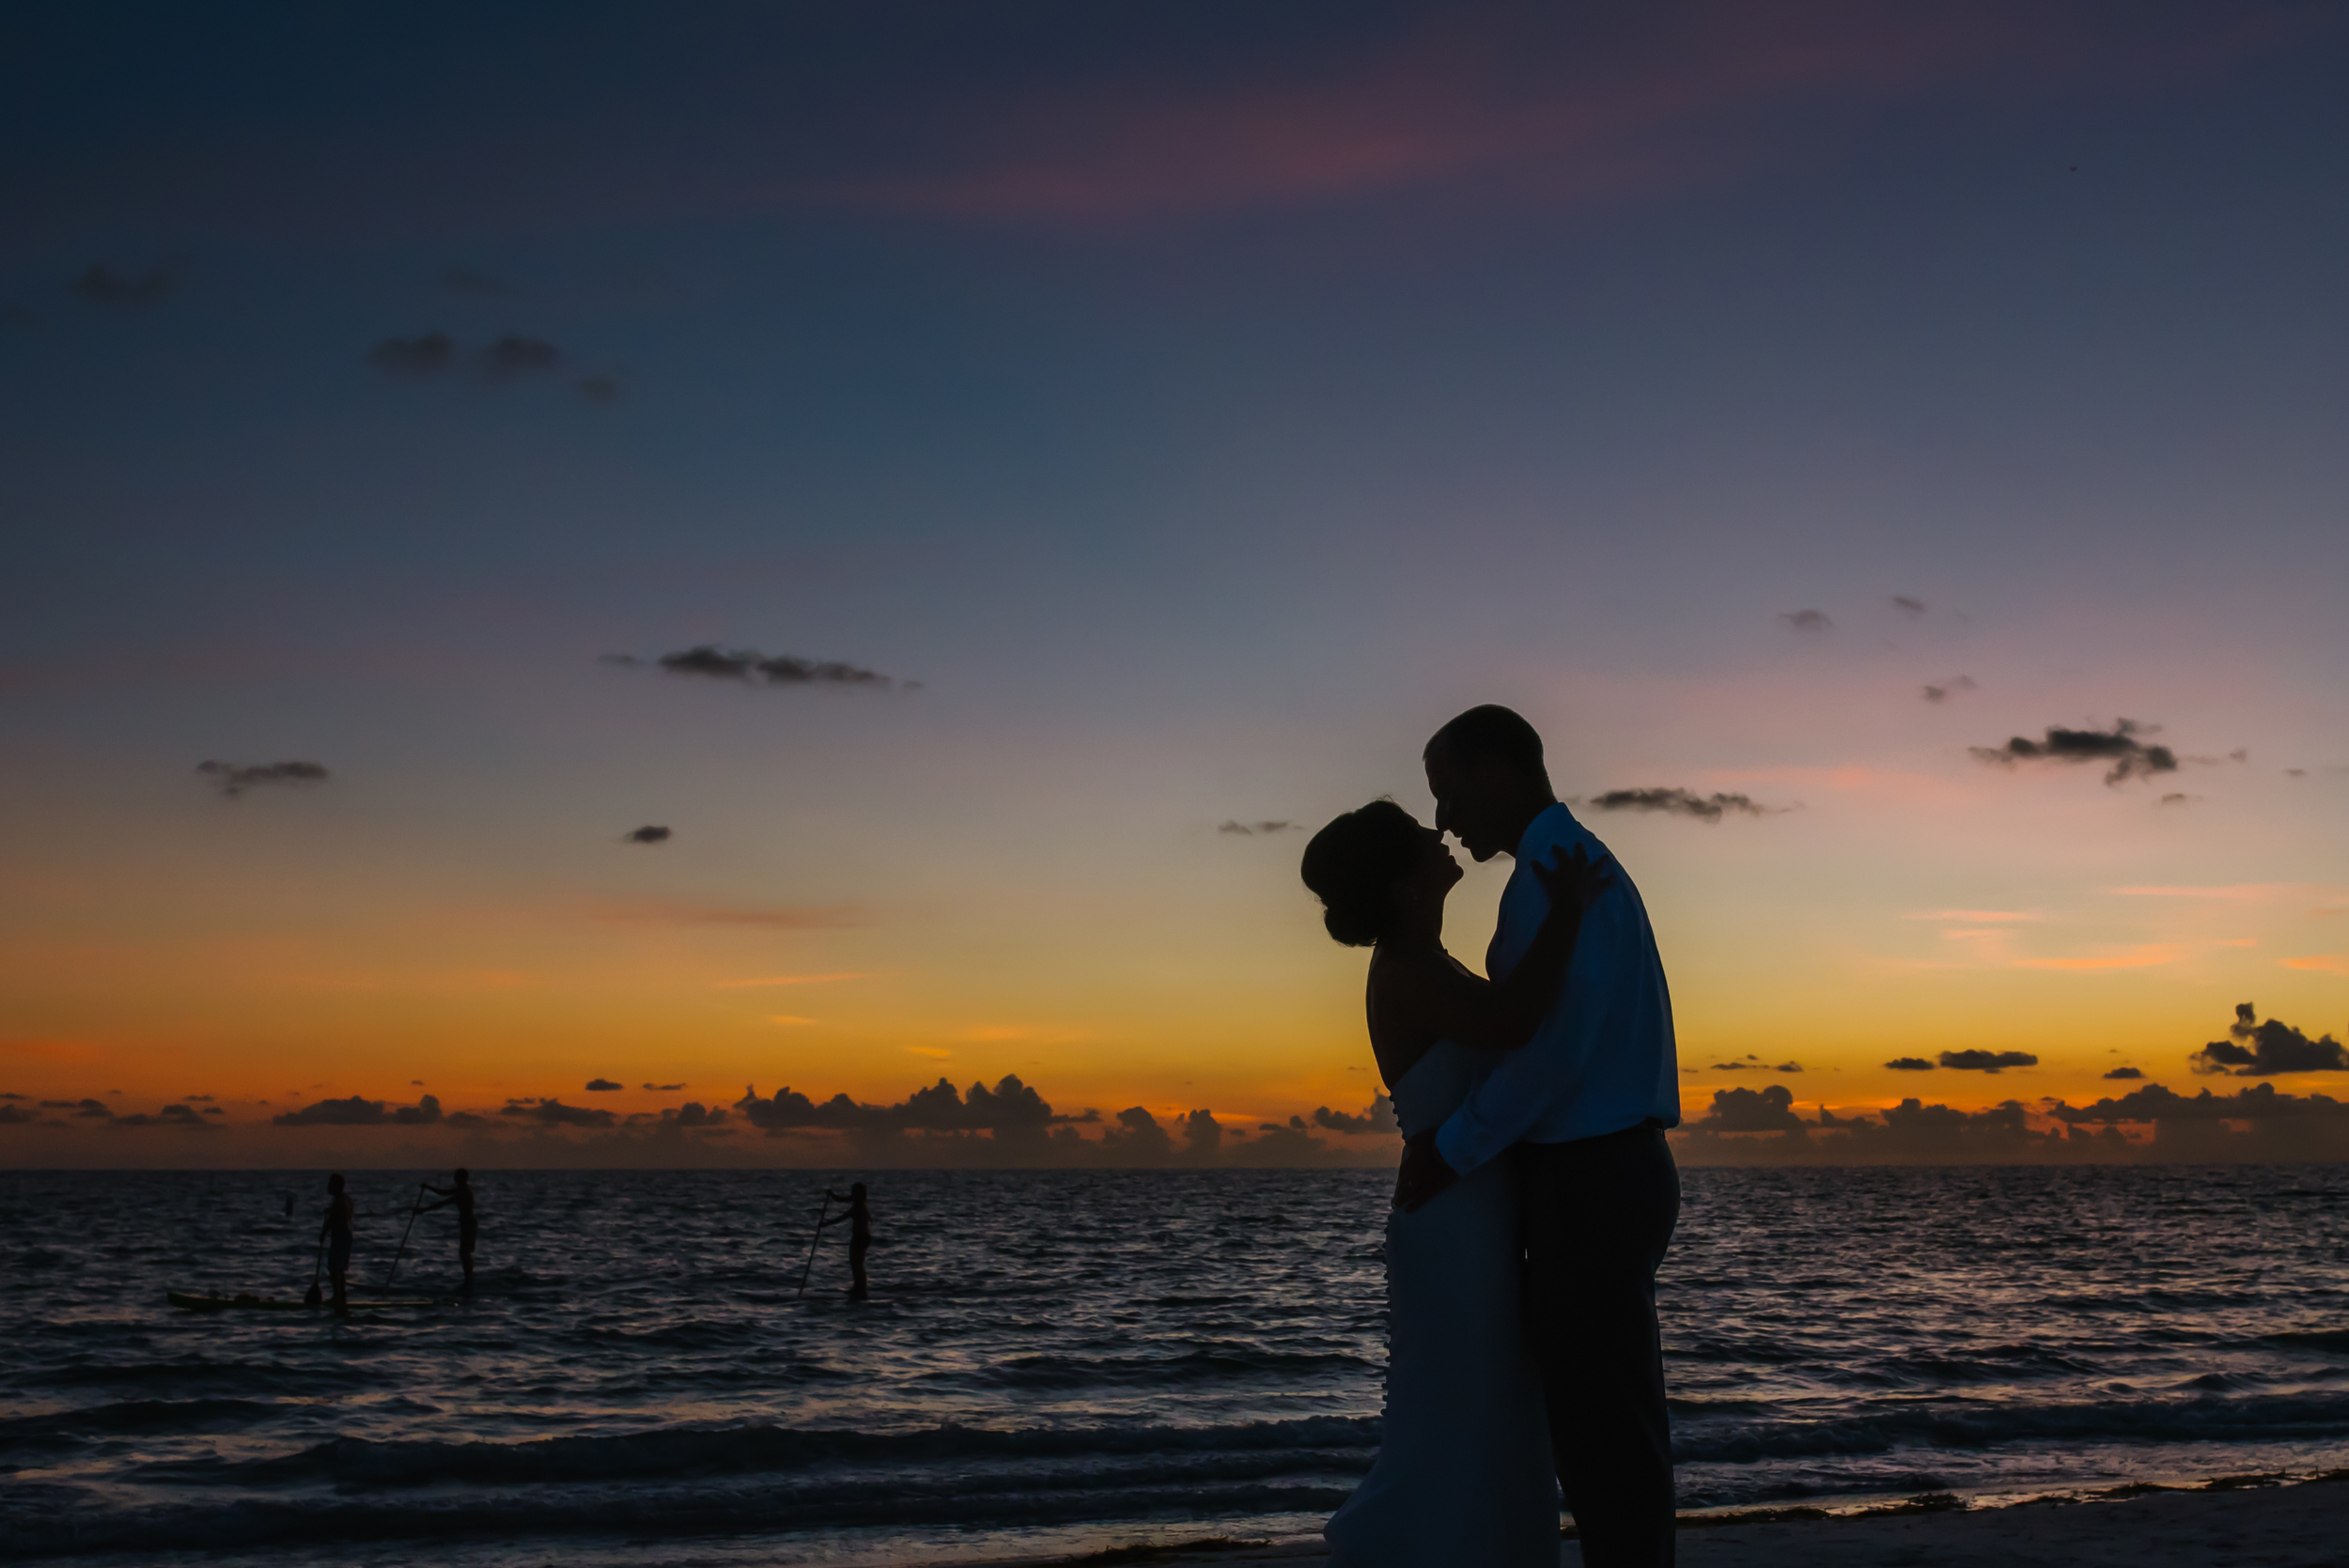 Melissa and Micheal were such a blast! They were so hilarious and irreverent! But when it came time for a few moments alone for the sunset they were so romantic and lovely. I love this frame of them holding each other close as the paddle boarders sneak by in the distant surf.